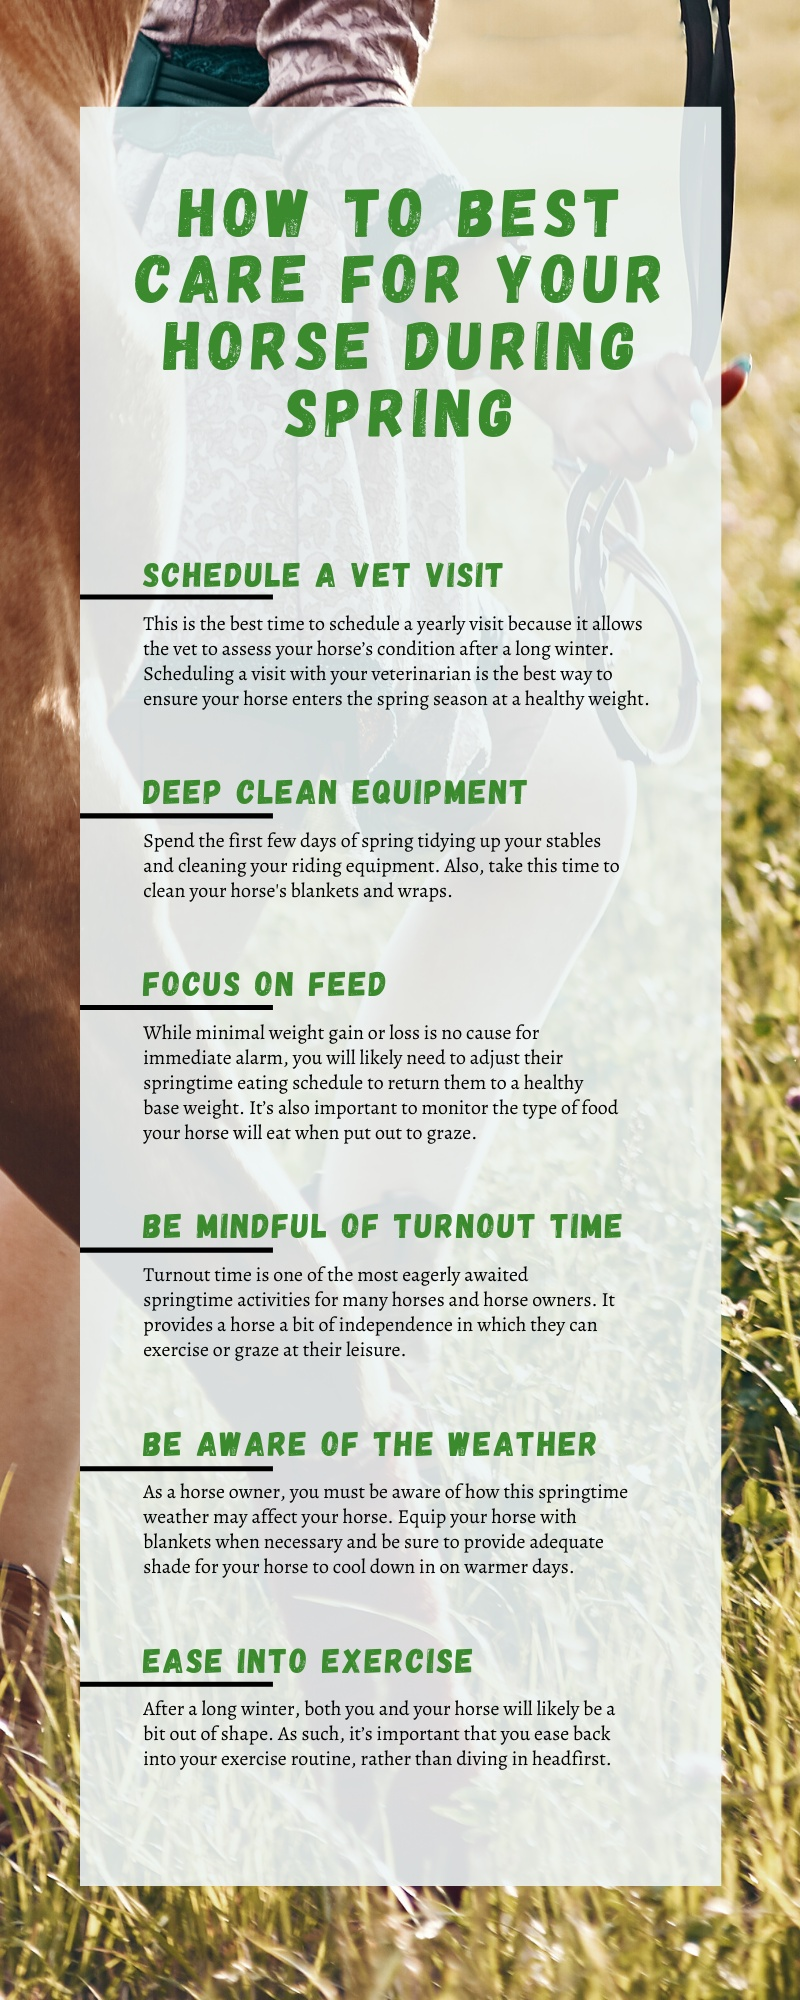 How to Best Care for Your Horse During Spring